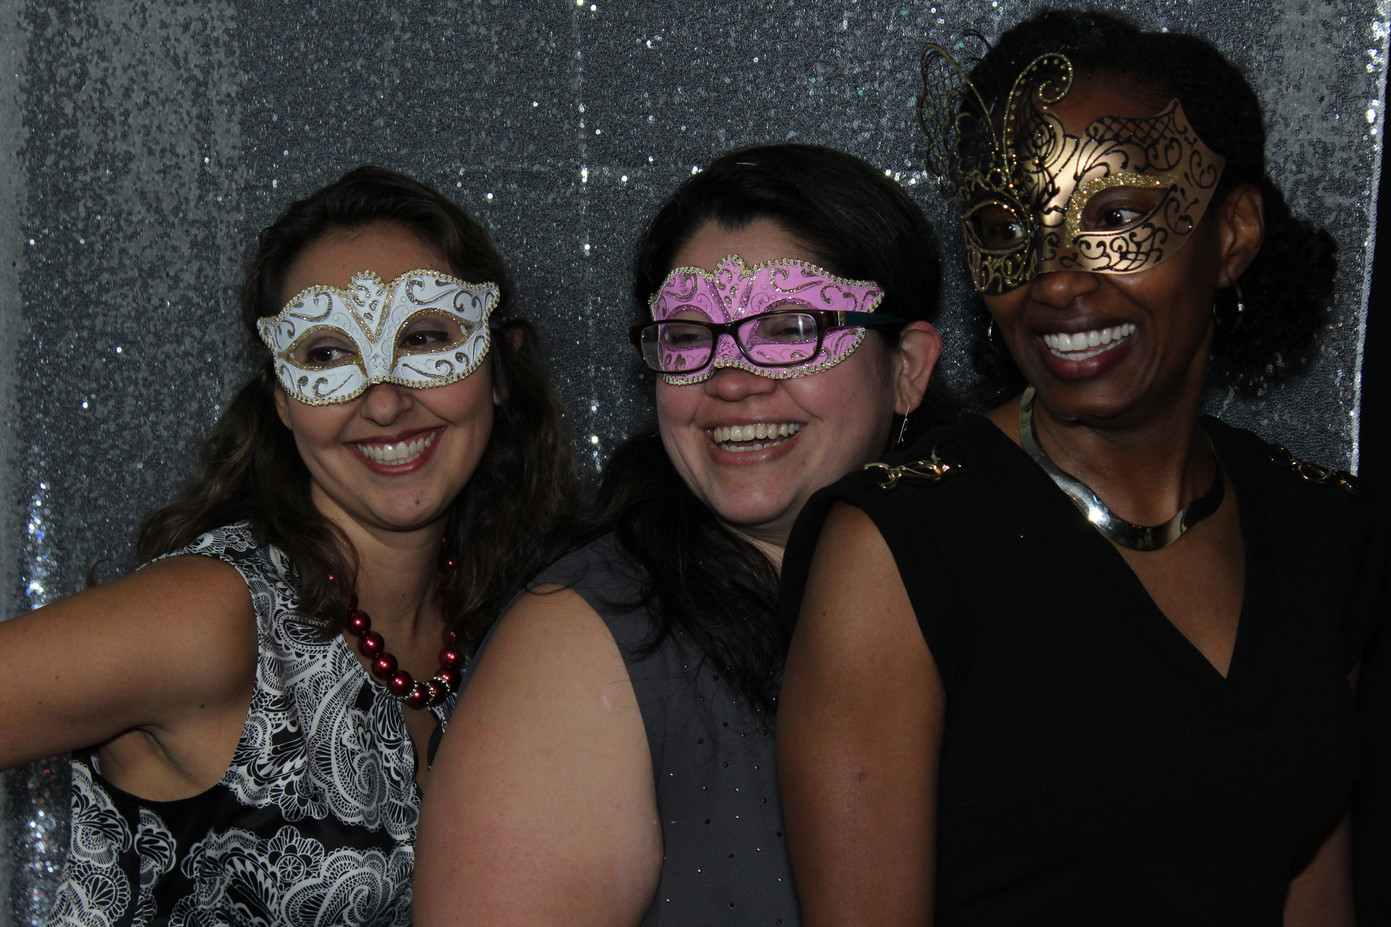 Masquerade-Party-With-Roaming-Photo-Booth.JPG